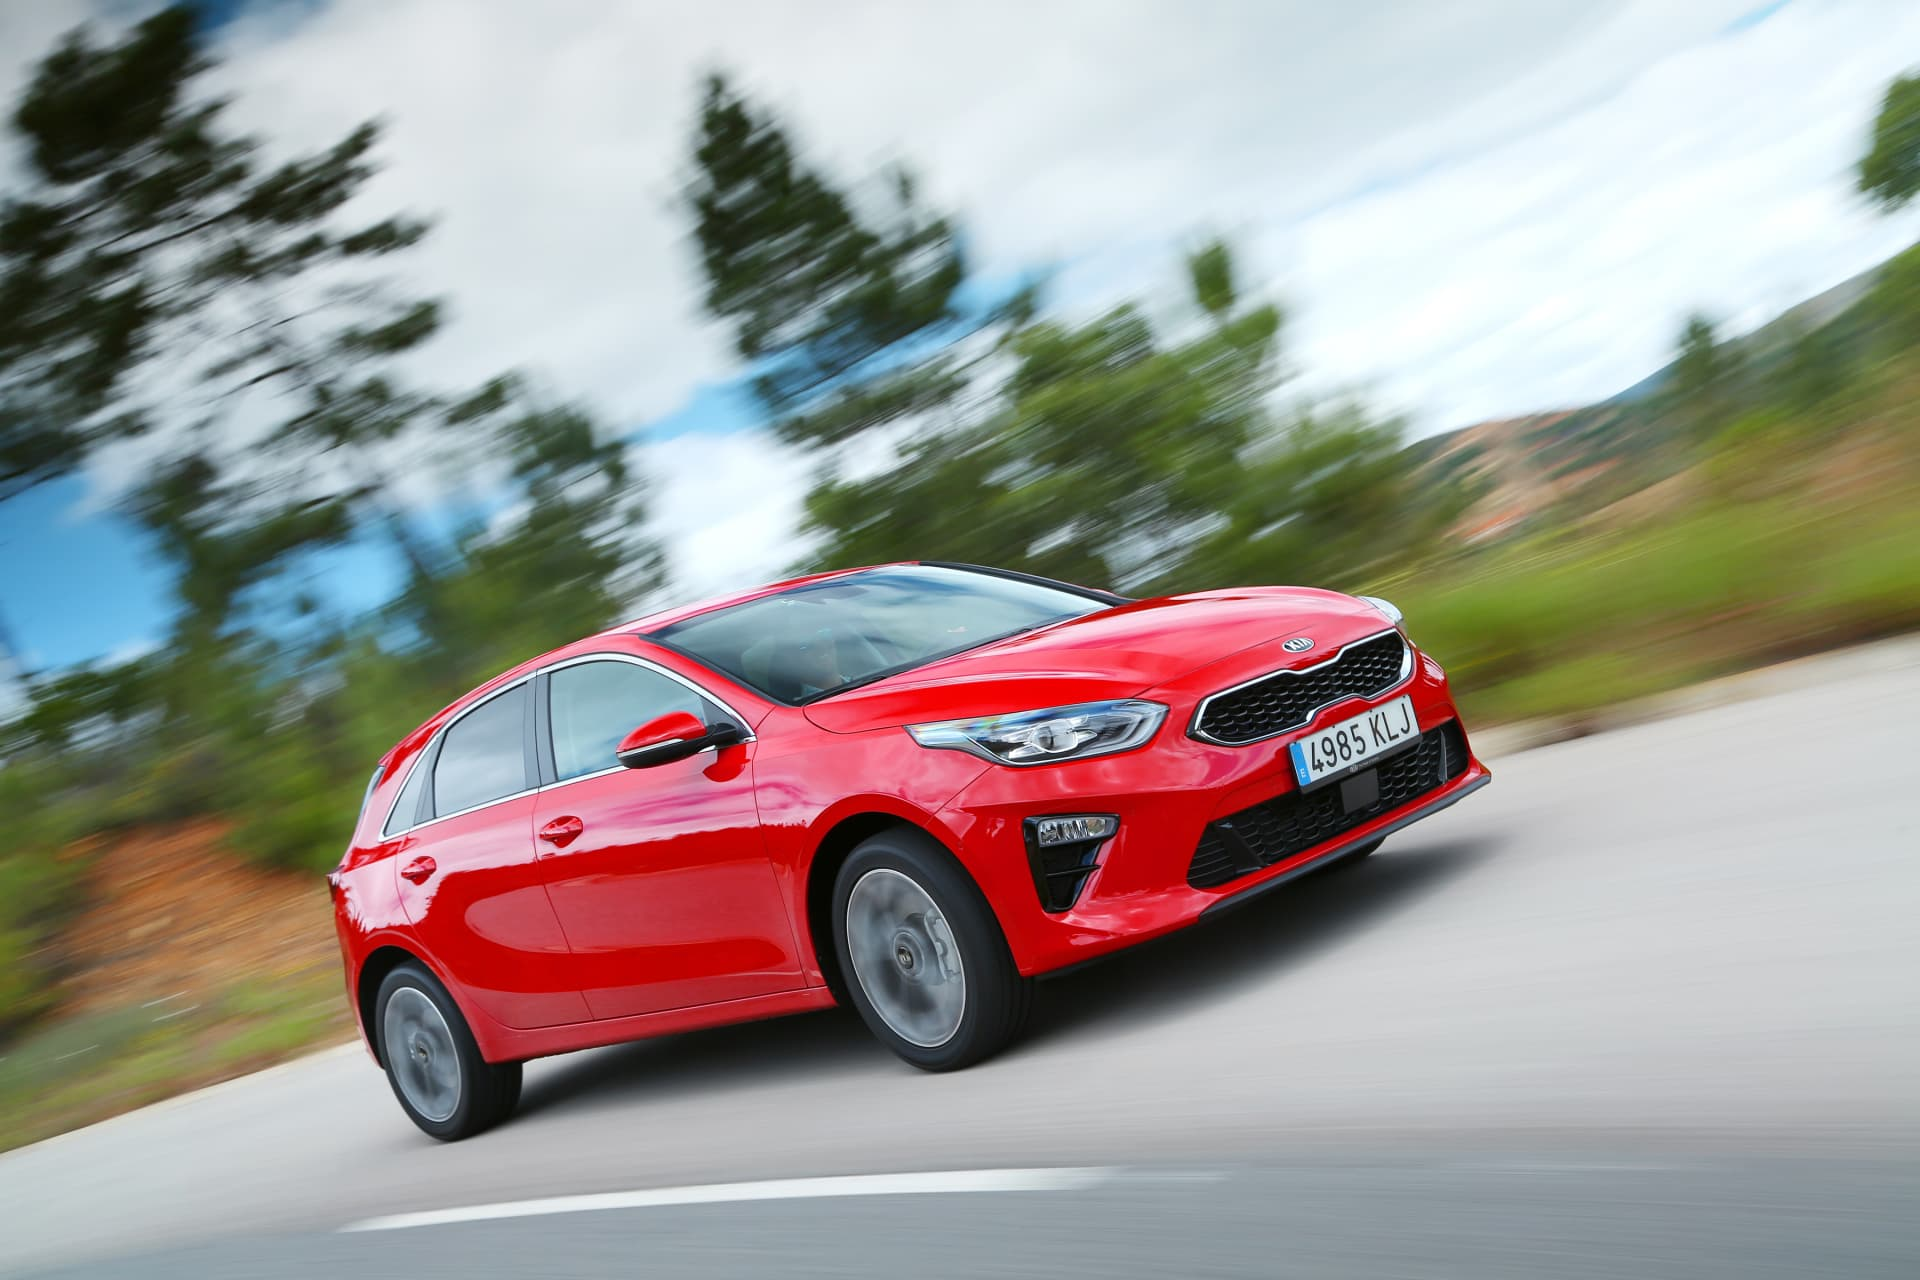 Kia Ceed 1 4 T Gdi 7 Dct Transmission 140hp Track Red 10